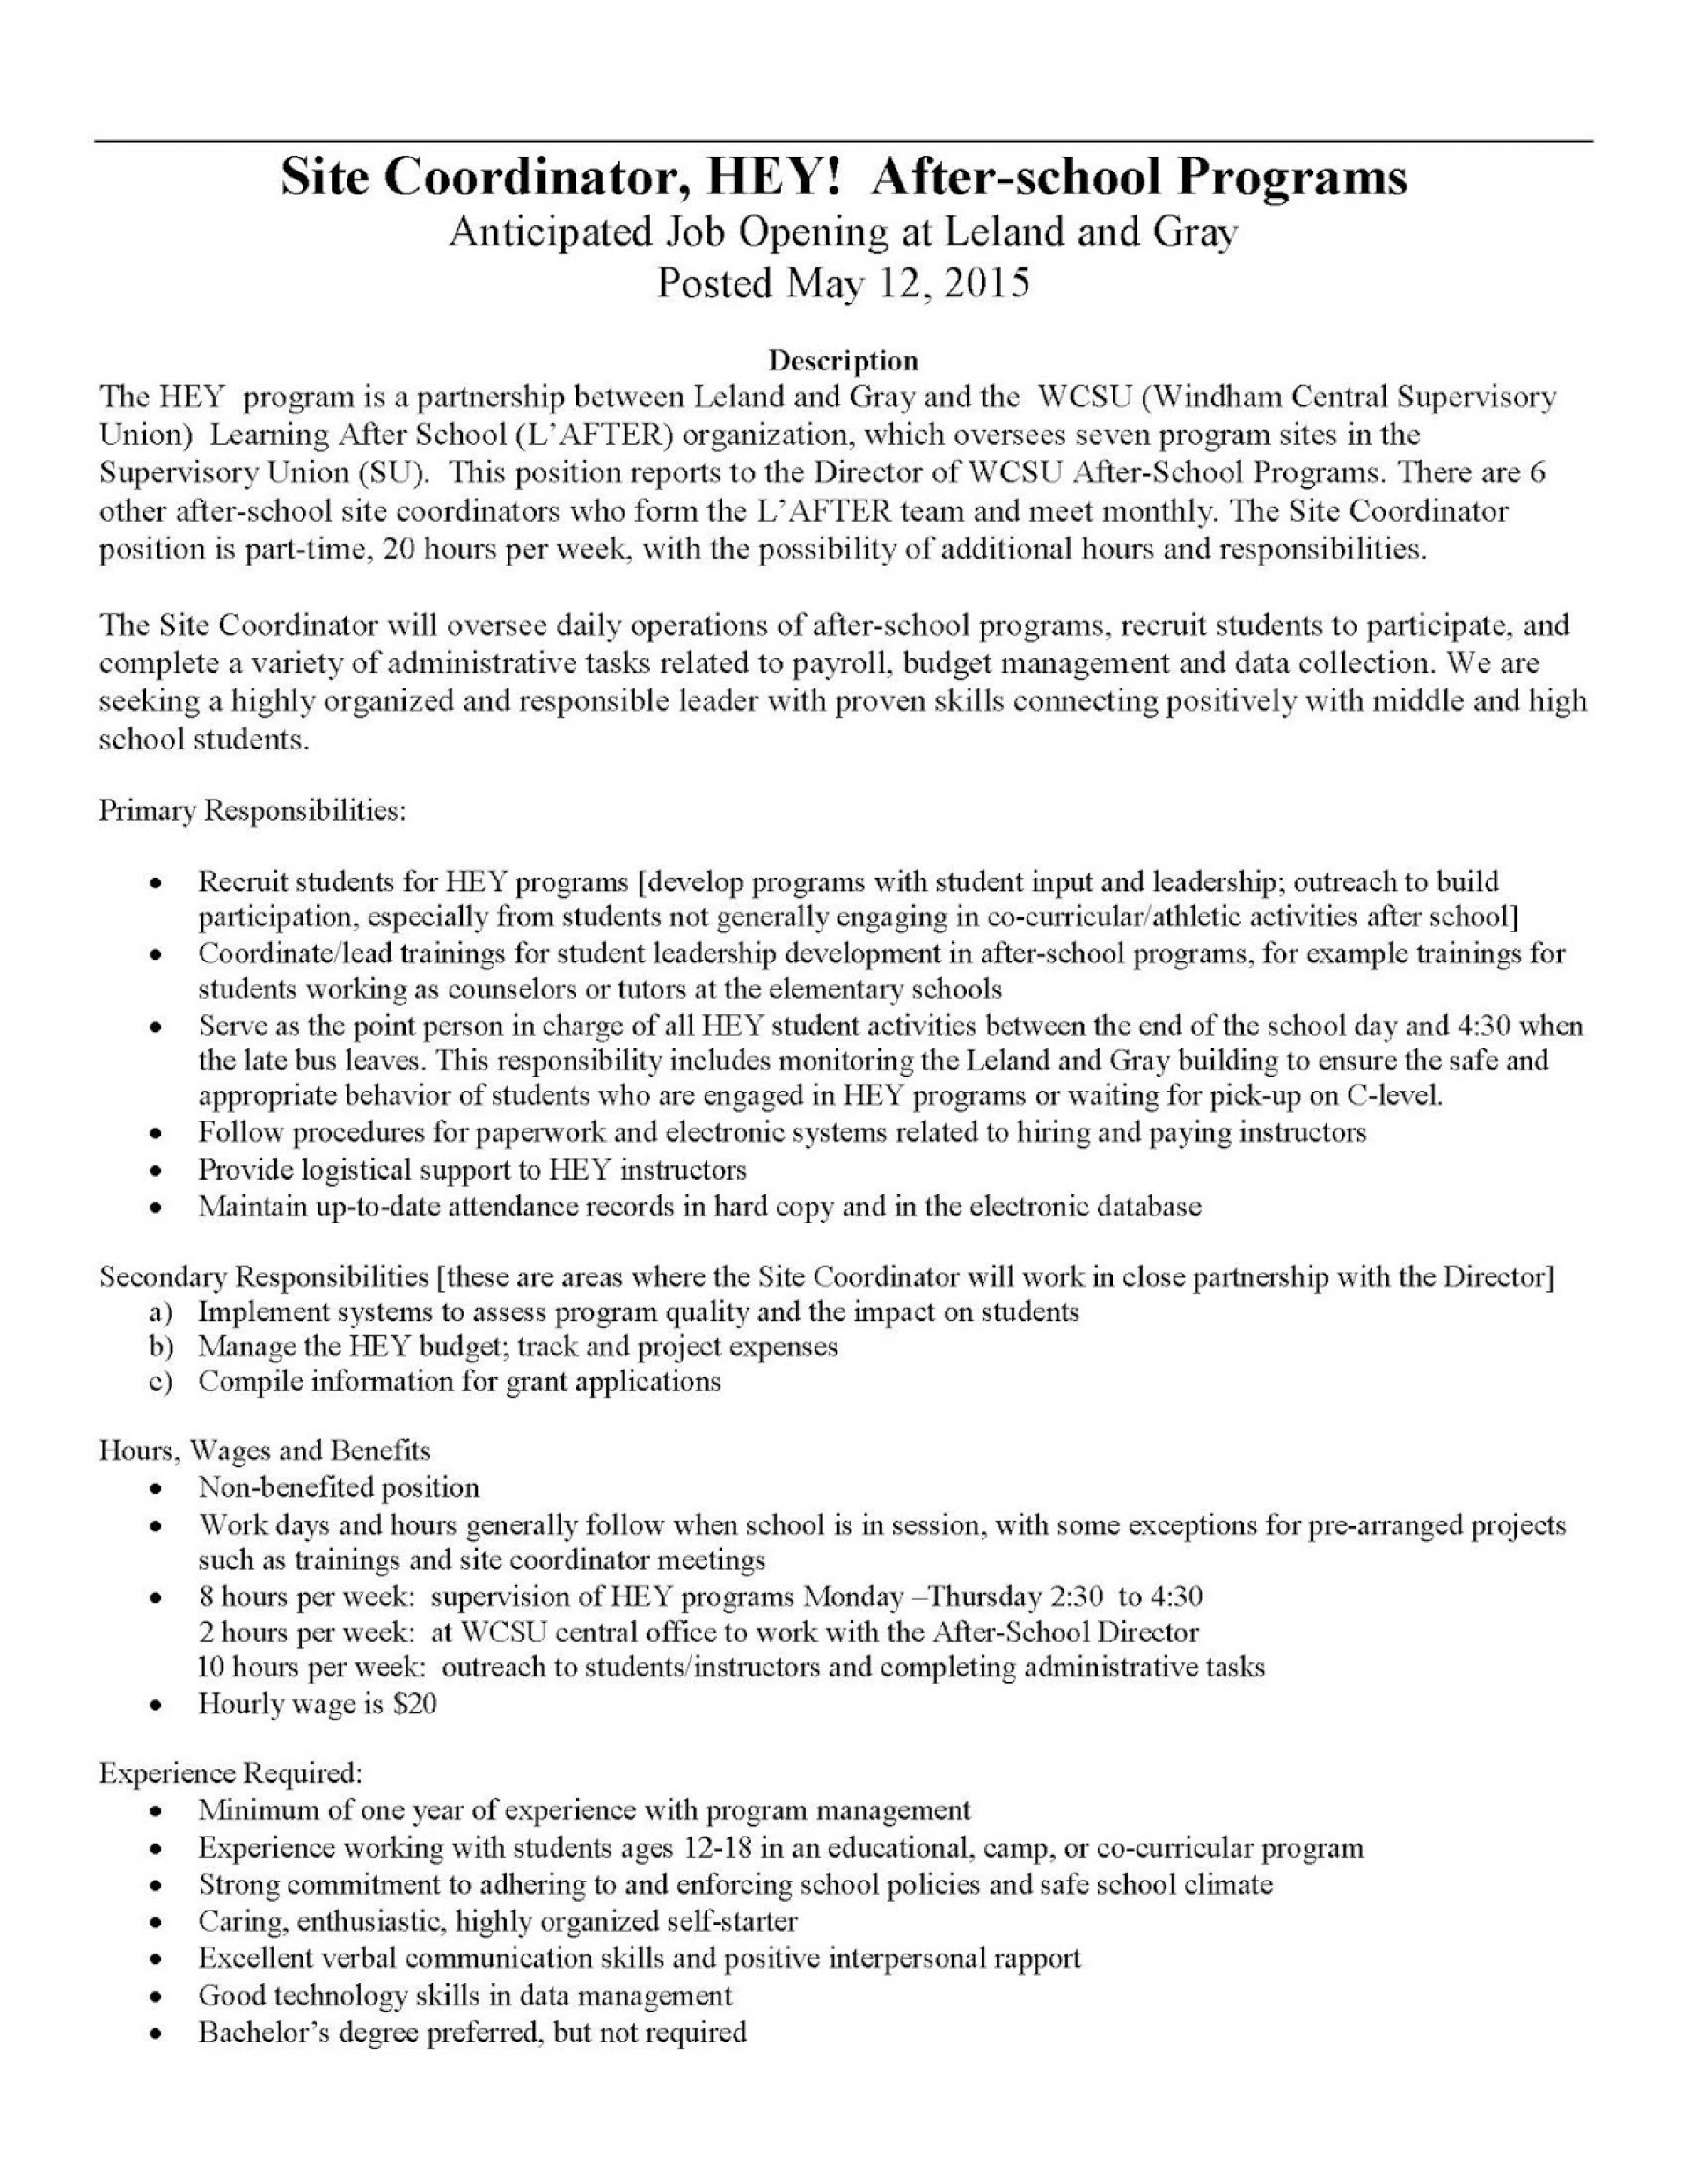 006 Heysitecoord Job Posting May201528129 Page 1 Thesis Generator For Research Remarkable Paper Statement Free 1920